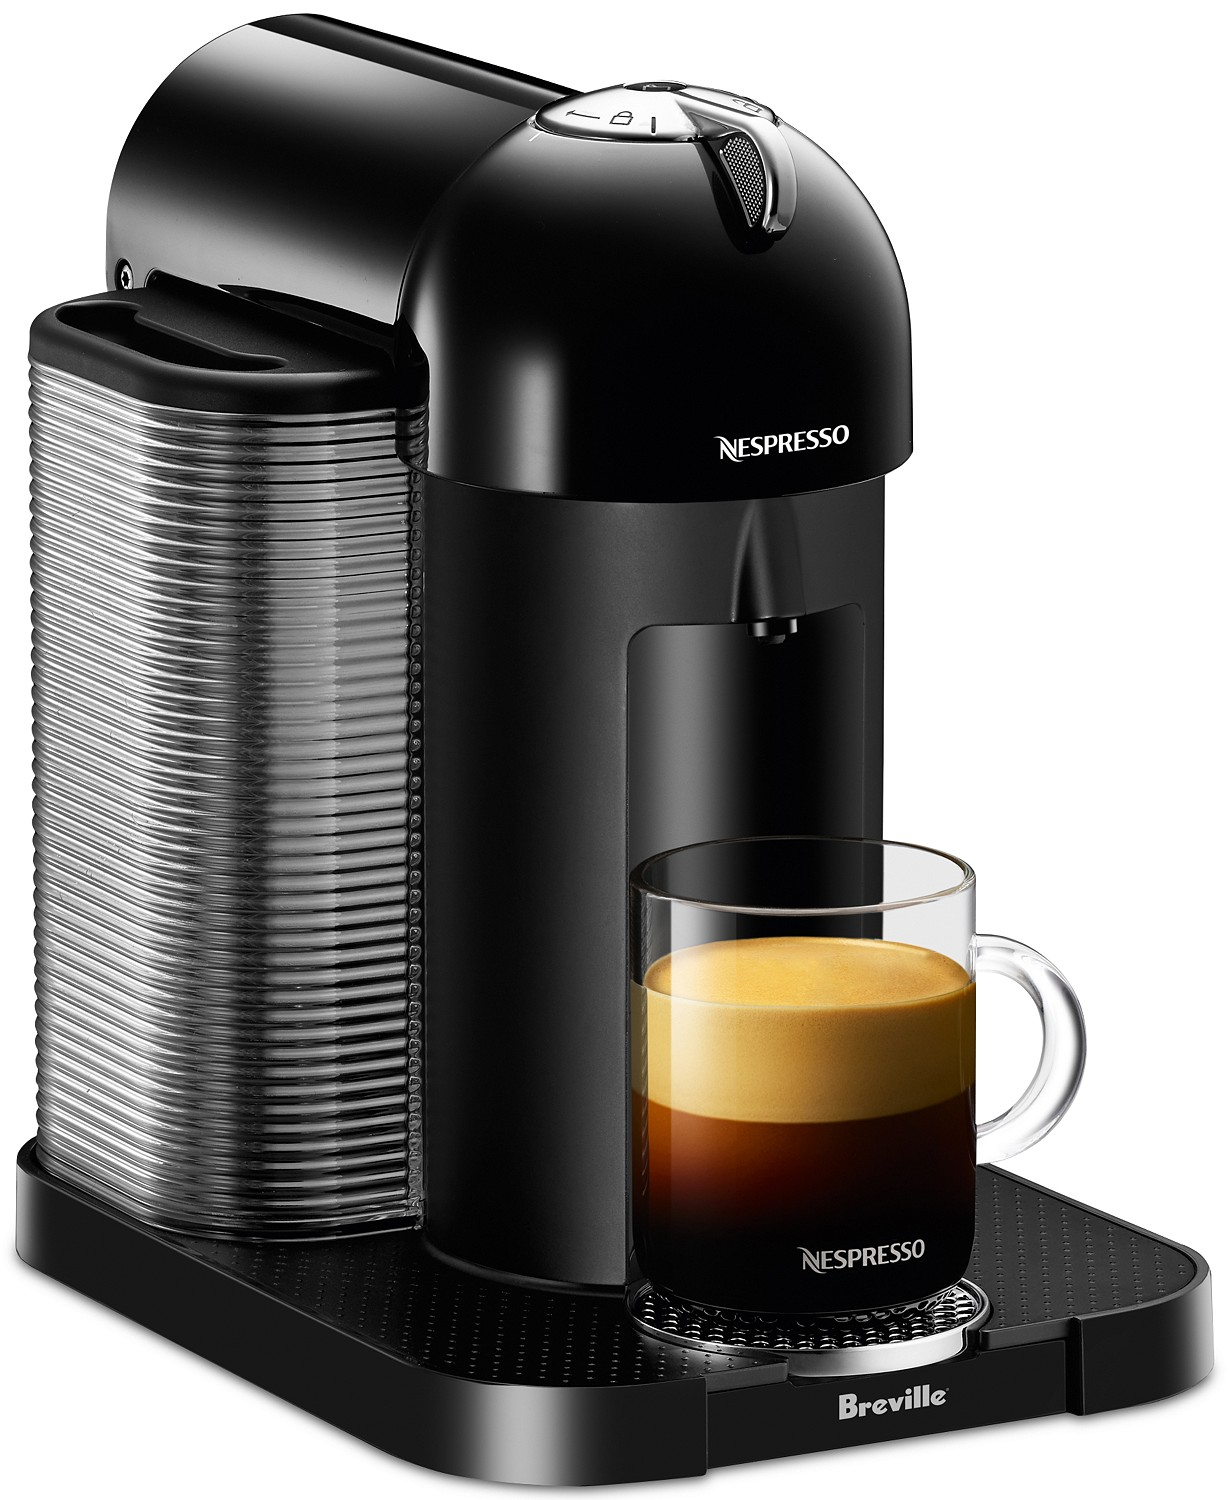 nespresso coffee maker_macys